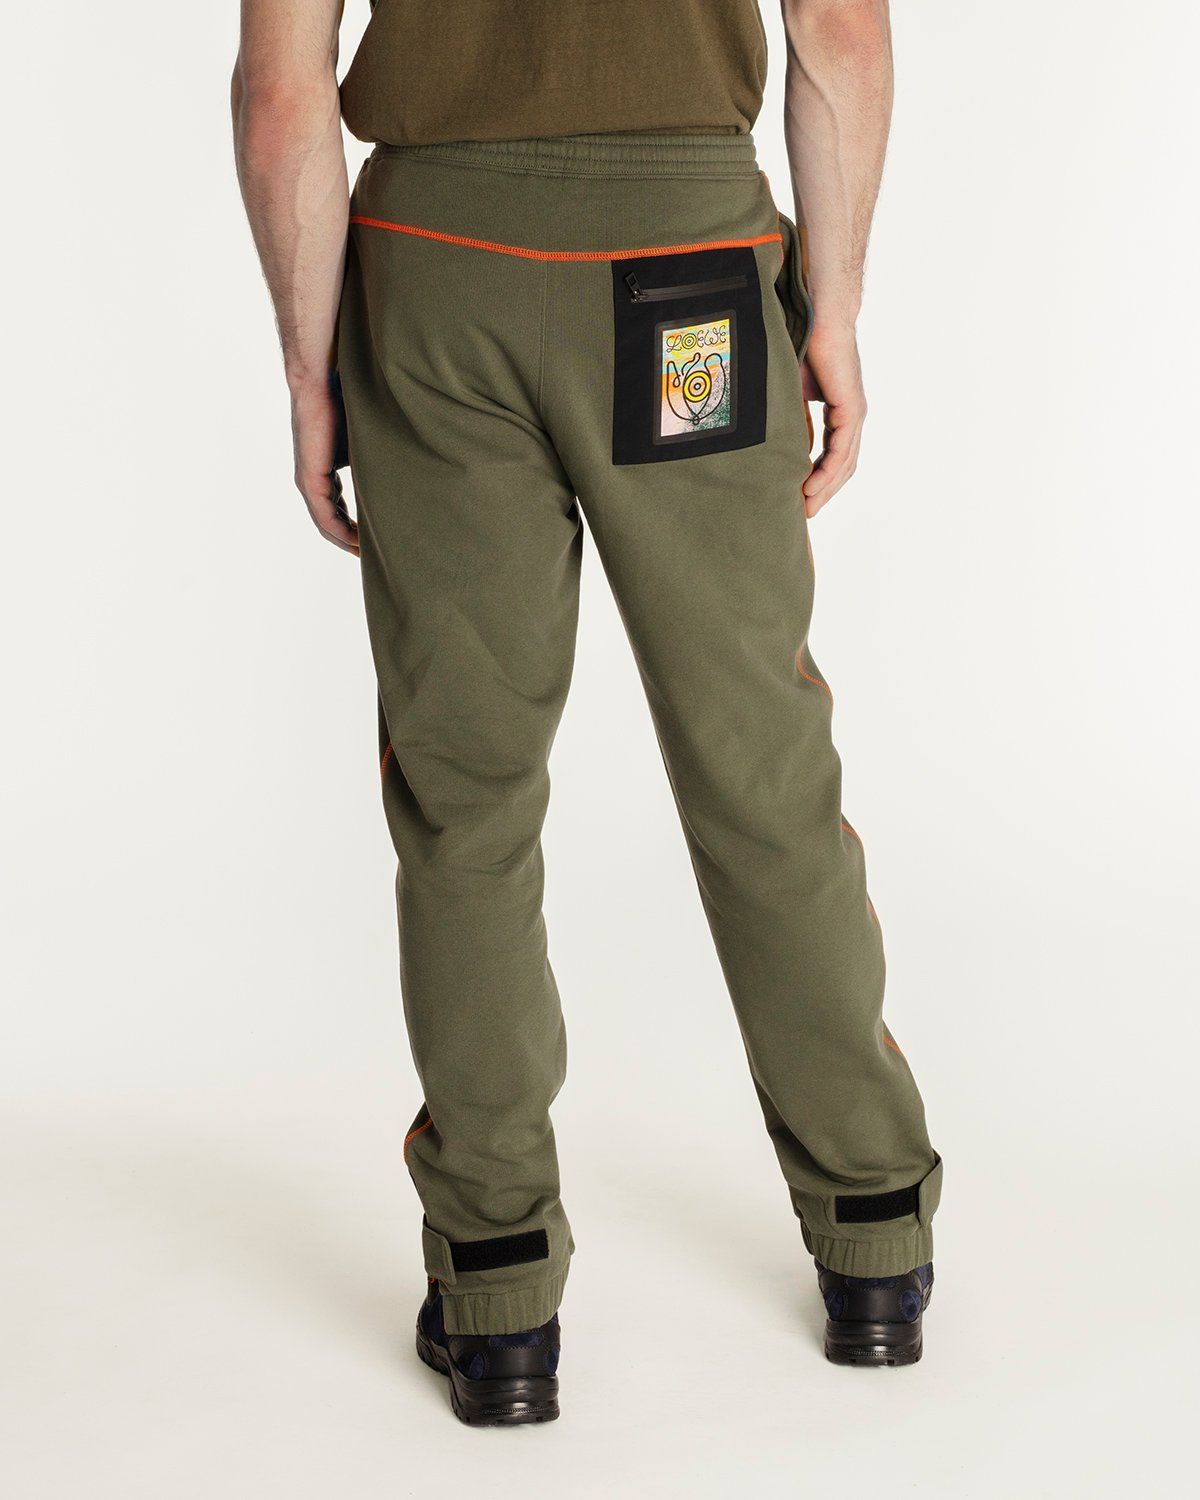 EYE/LOEWE/NATURE FLEECE TROUSERS - Image 4